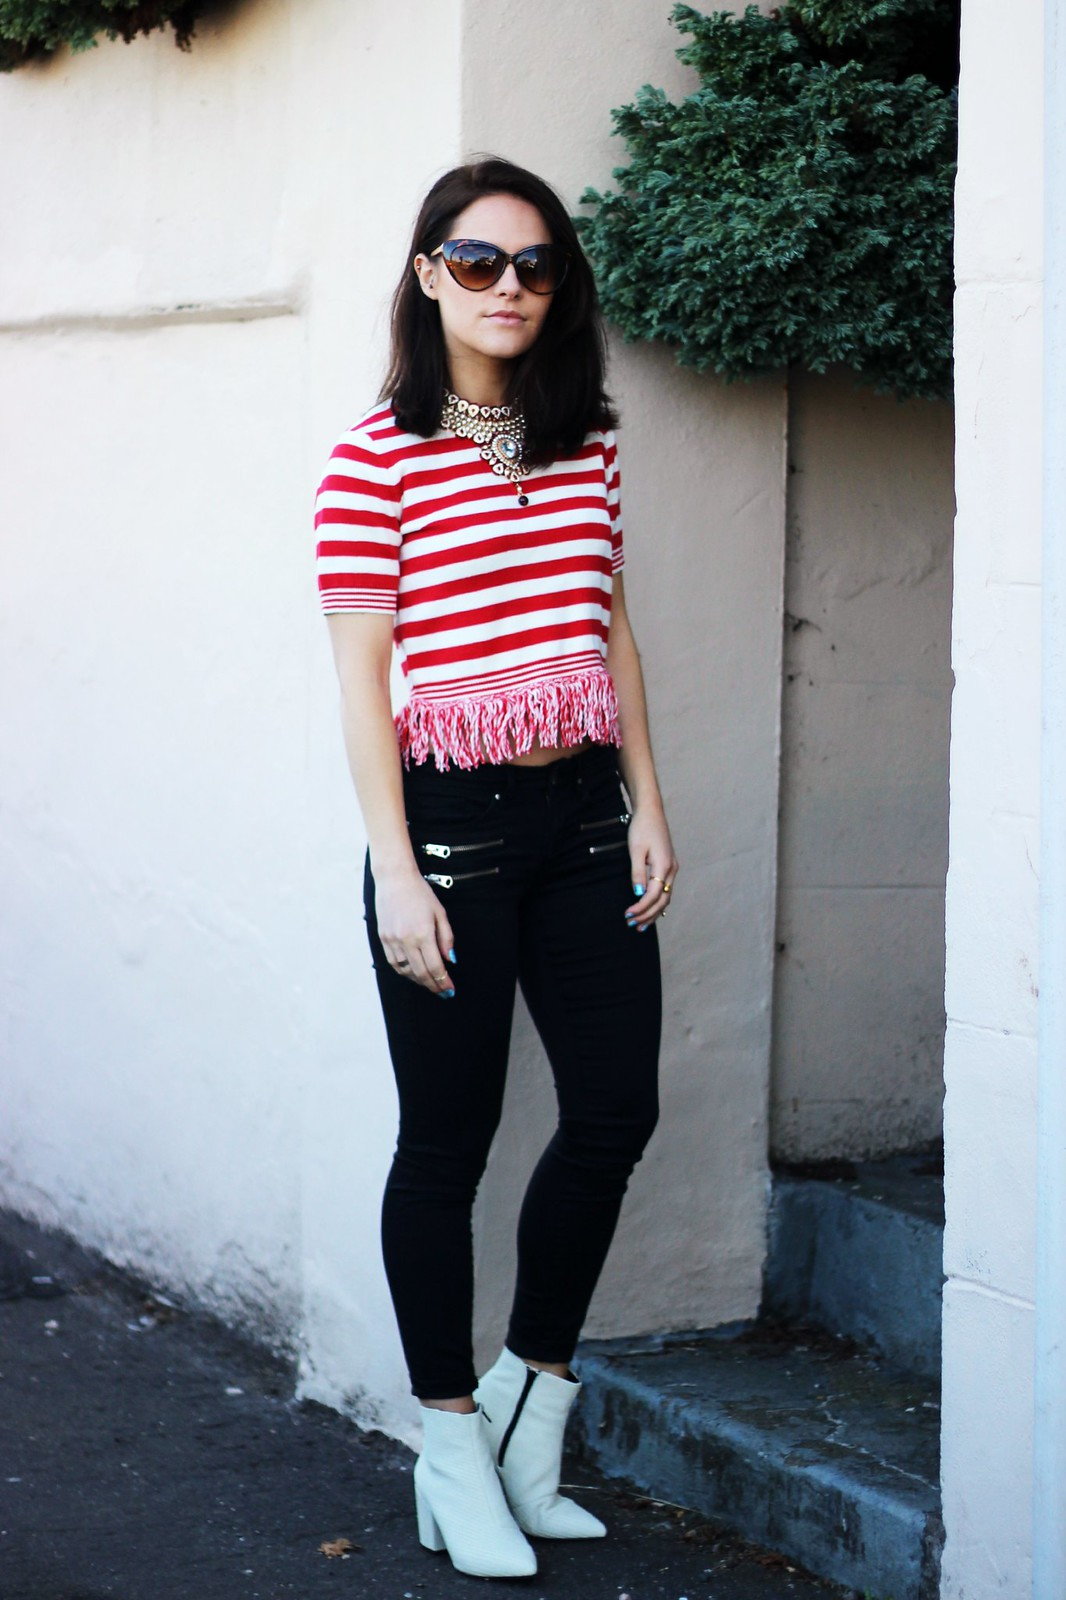 Topshop festival outfit post 8